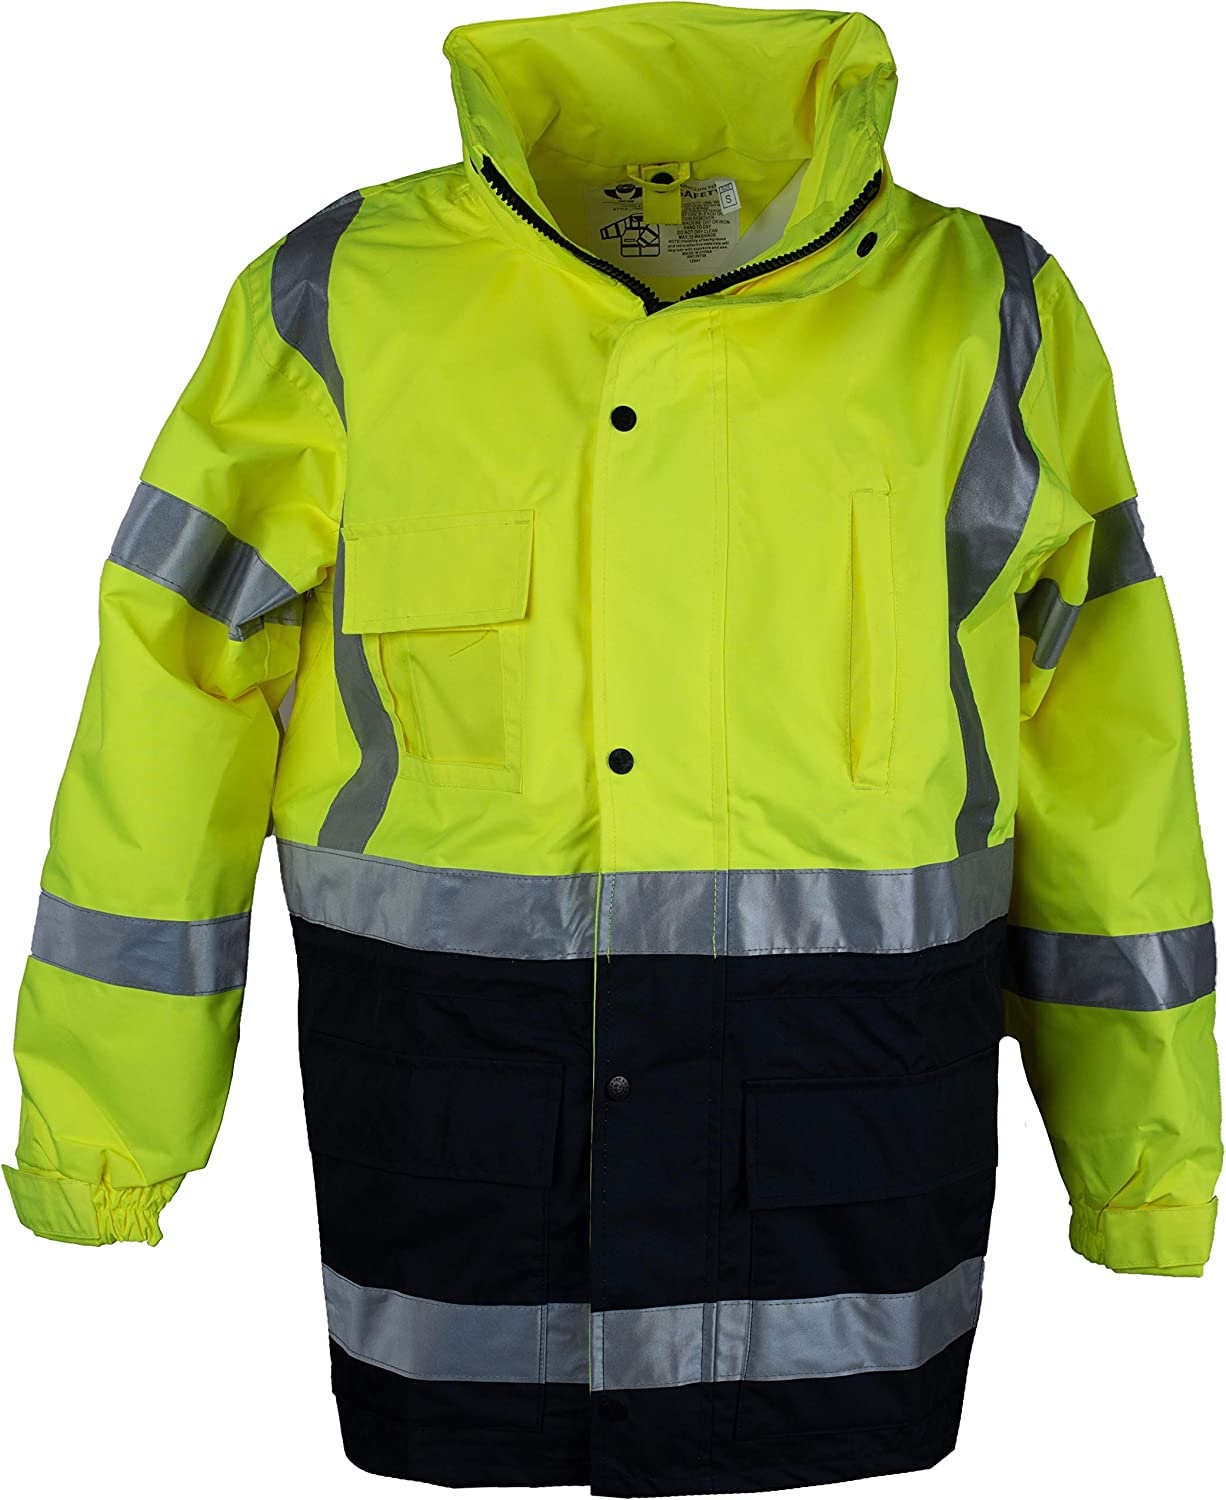 Safety Depot Two Tone Lime Yellow Black Reflective Class 3 Safety Parka Jacket With Zipper and Pockets 736c-3 4XL